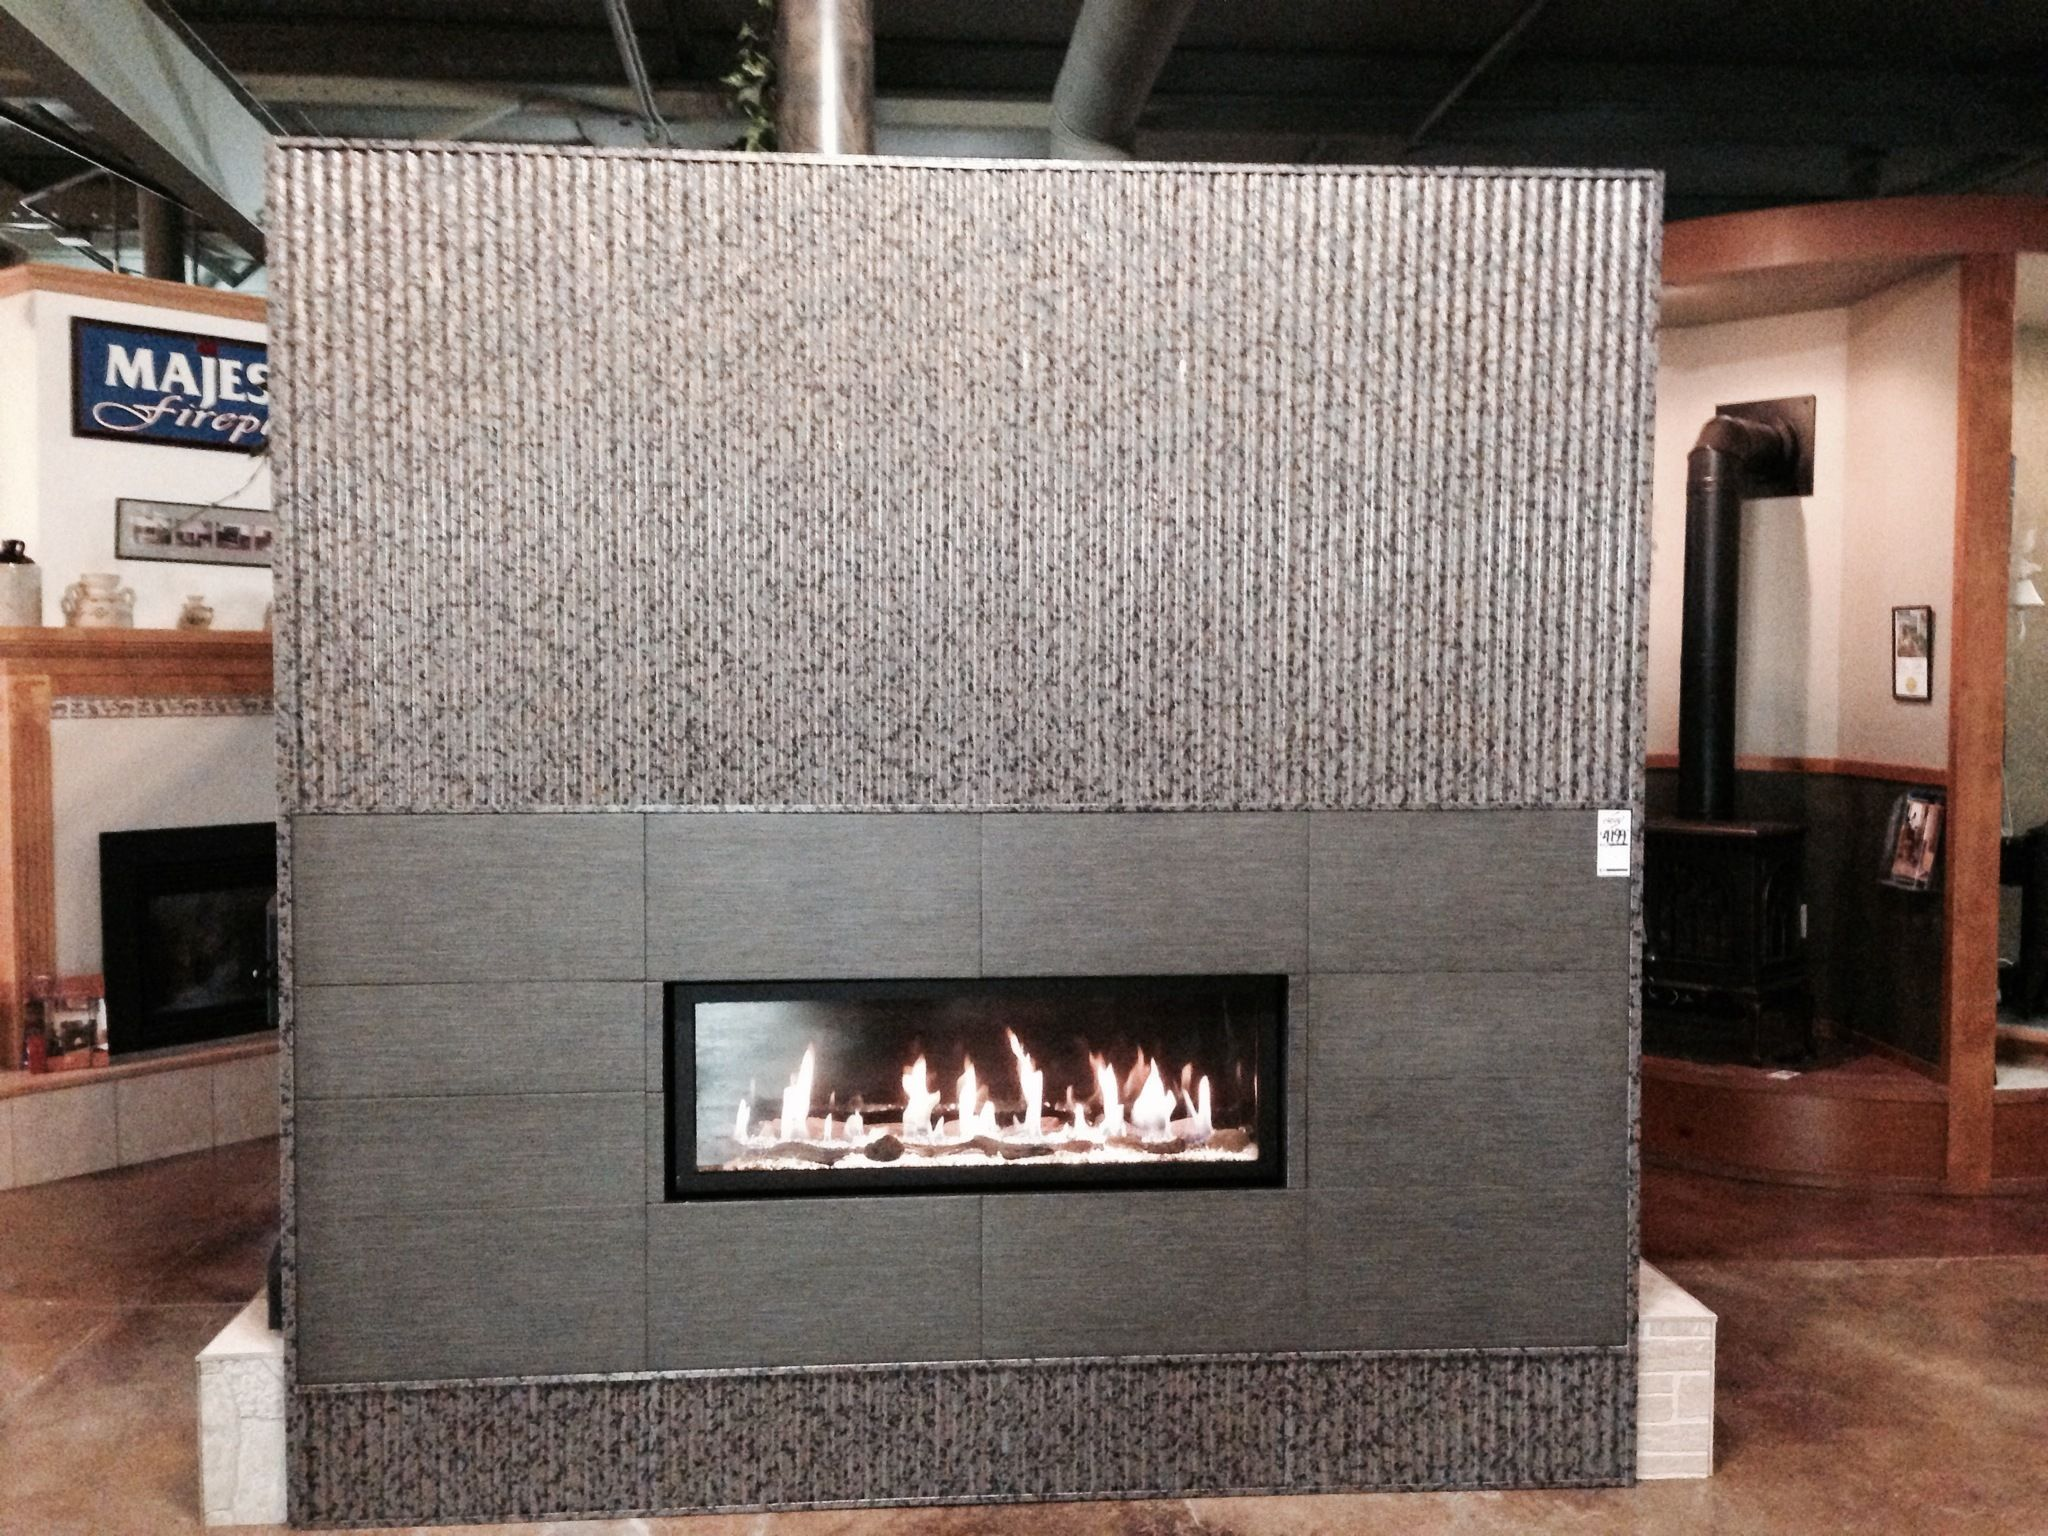 2a47354b591e56f0f65eb19fffb88ee3 Top Result 50 Awesome Steel Outdoor Fireplace Gallery 2018 Hiw6